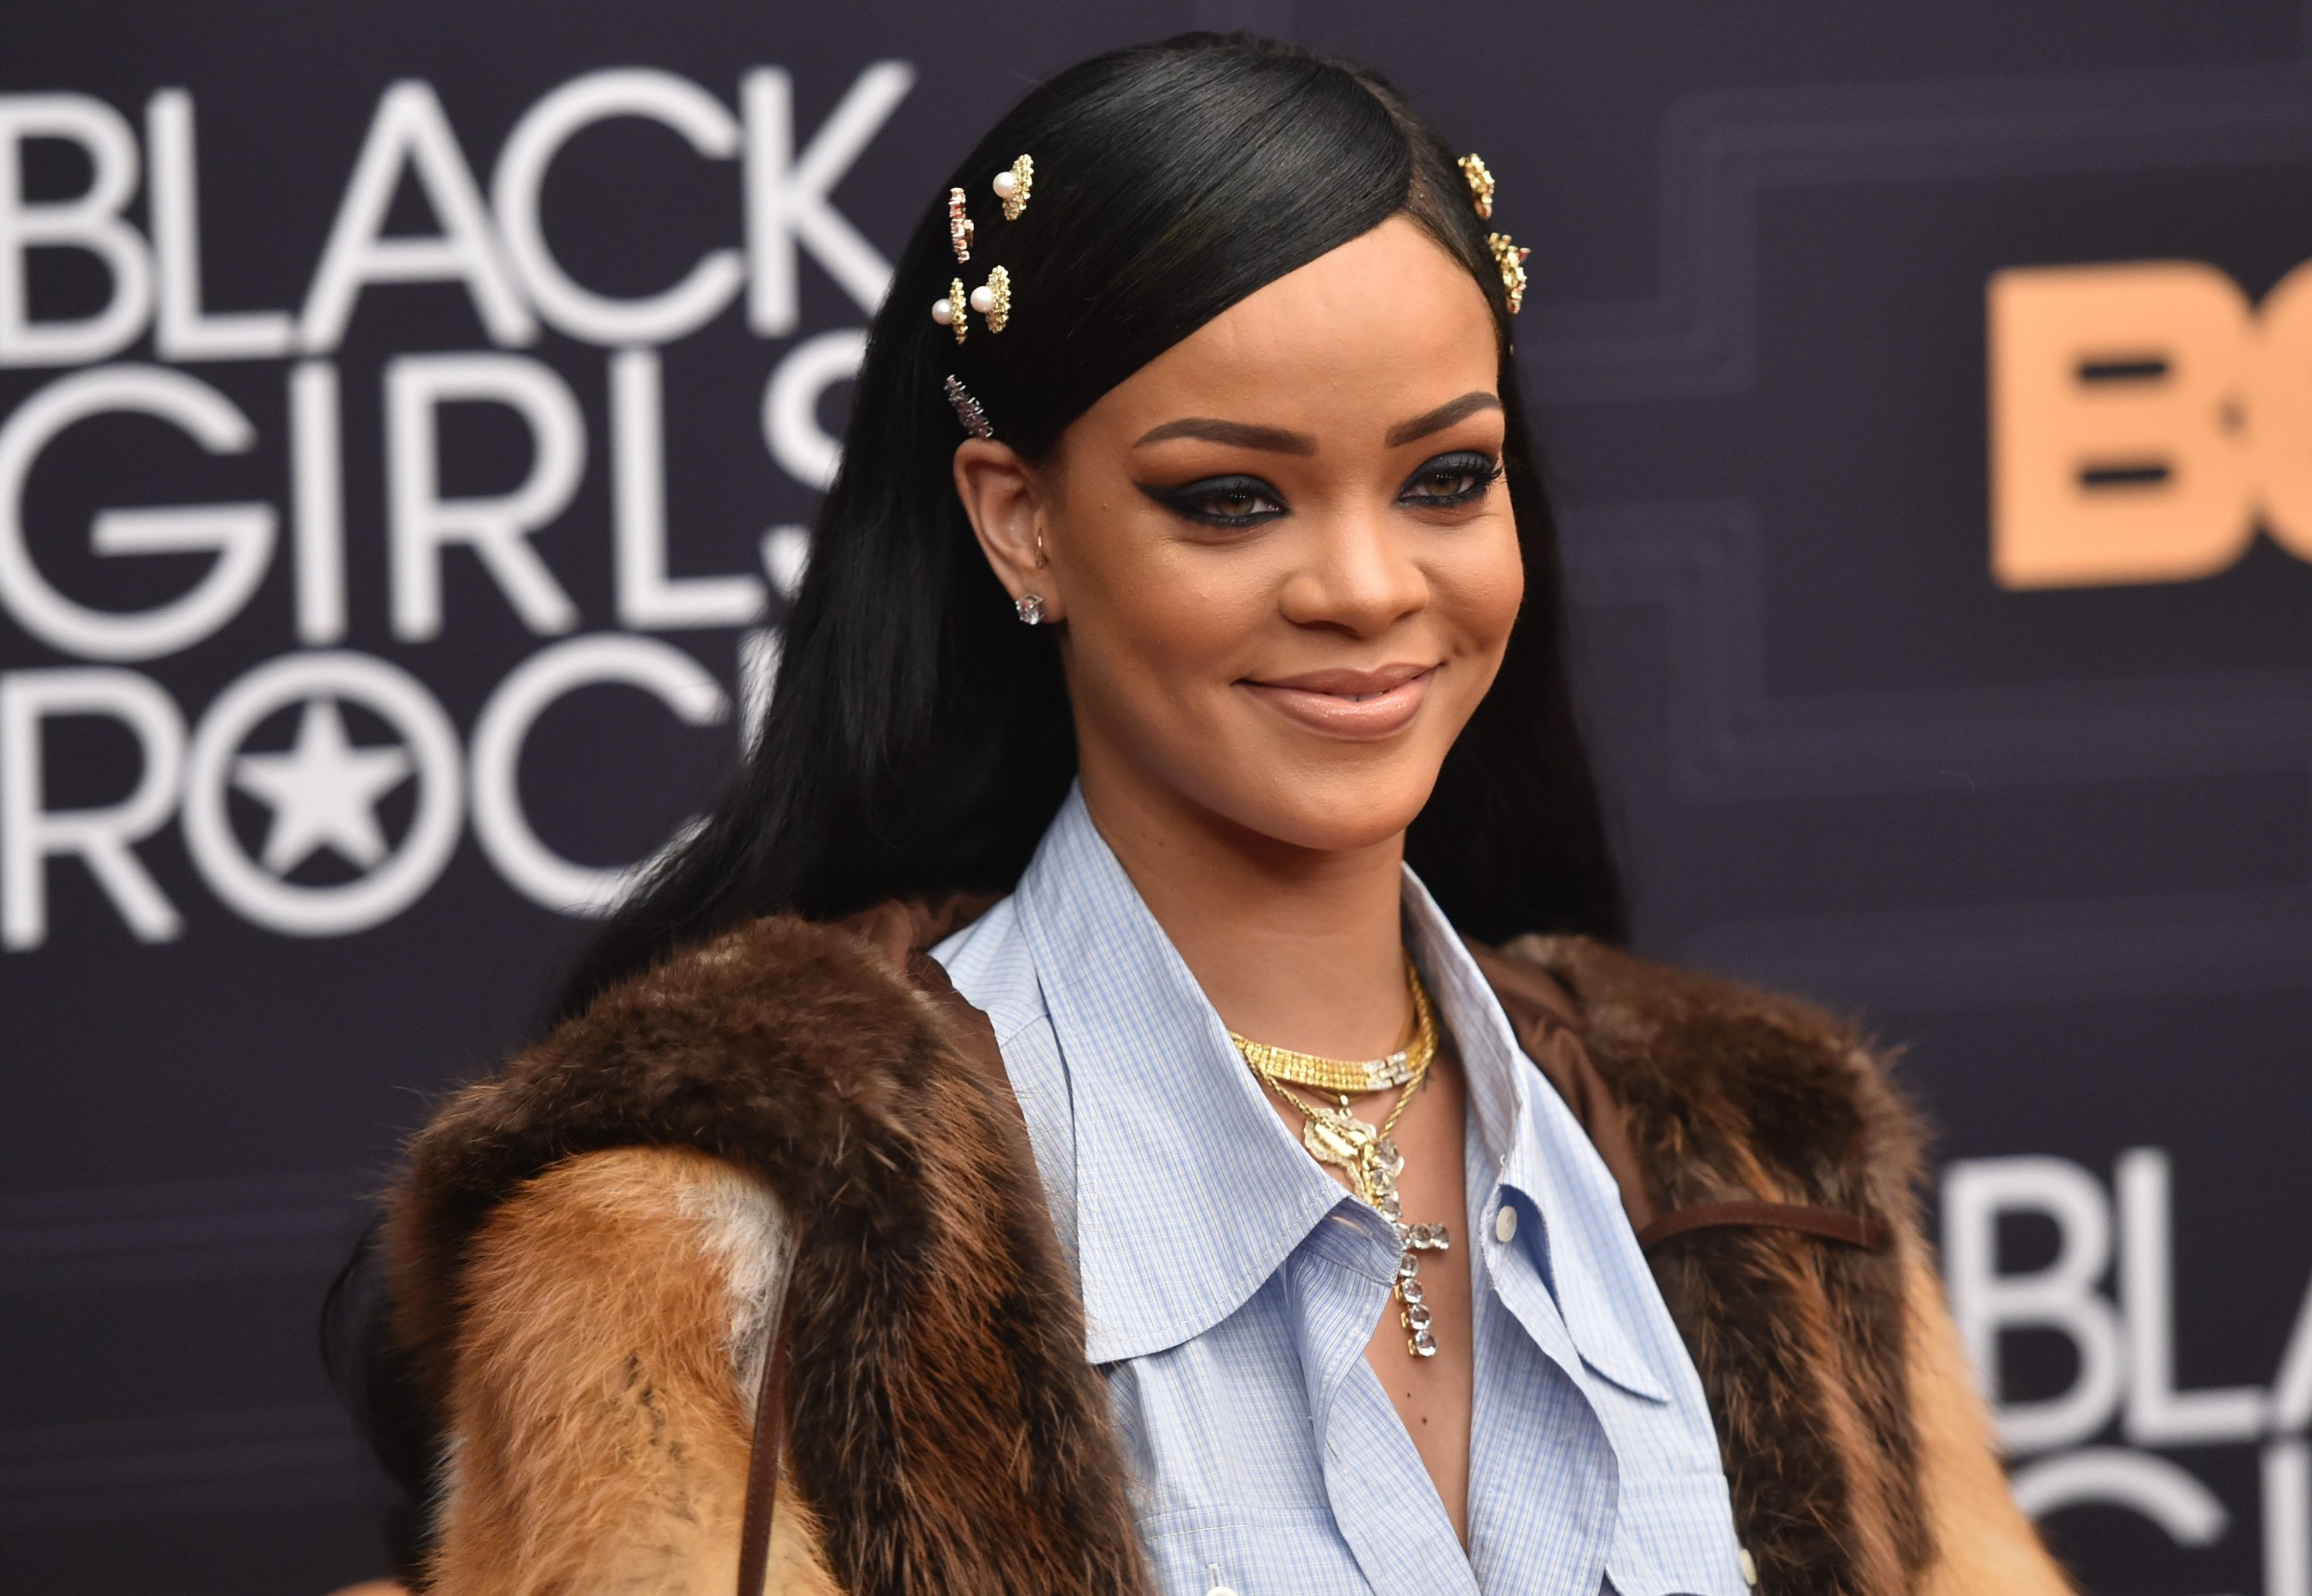 Rihanna attends Black Girls Rock! 2016 in Newark, New Jersey. (Photo by Paras Griffin/Getty Images)